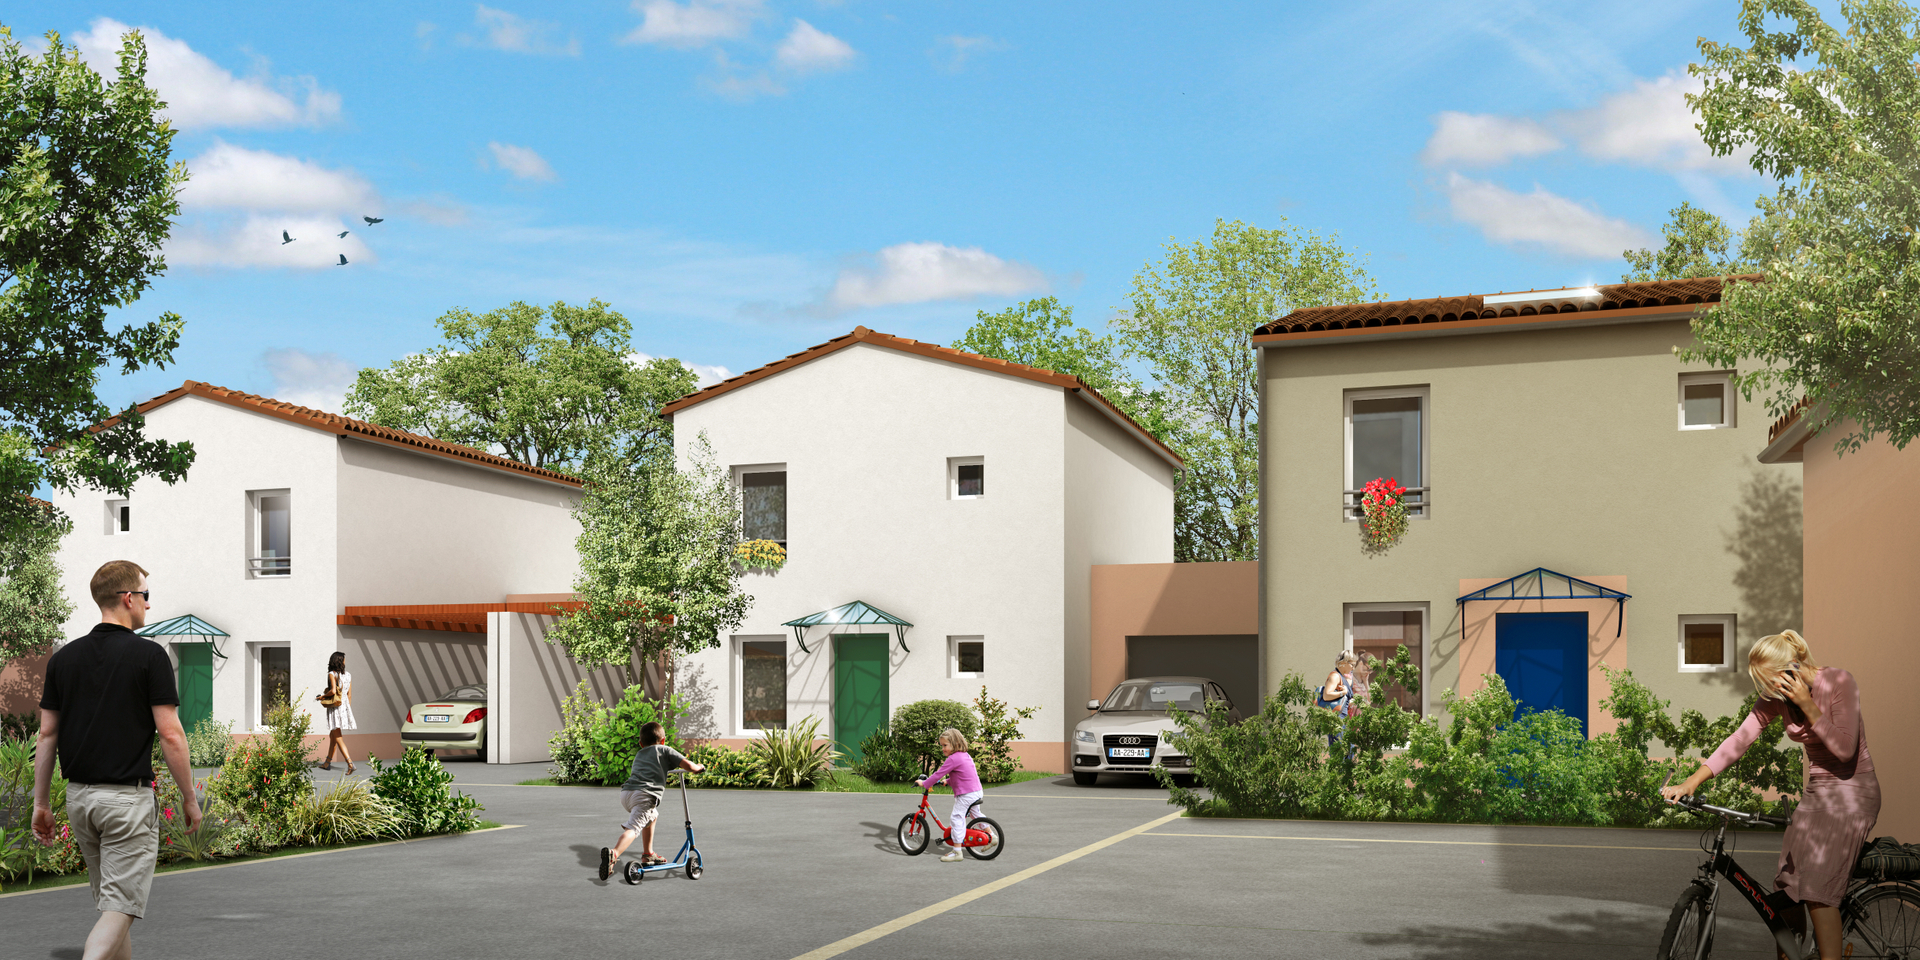 Programme immobilier neuf BUXEROLLES Buxerolles | Photo 1/1